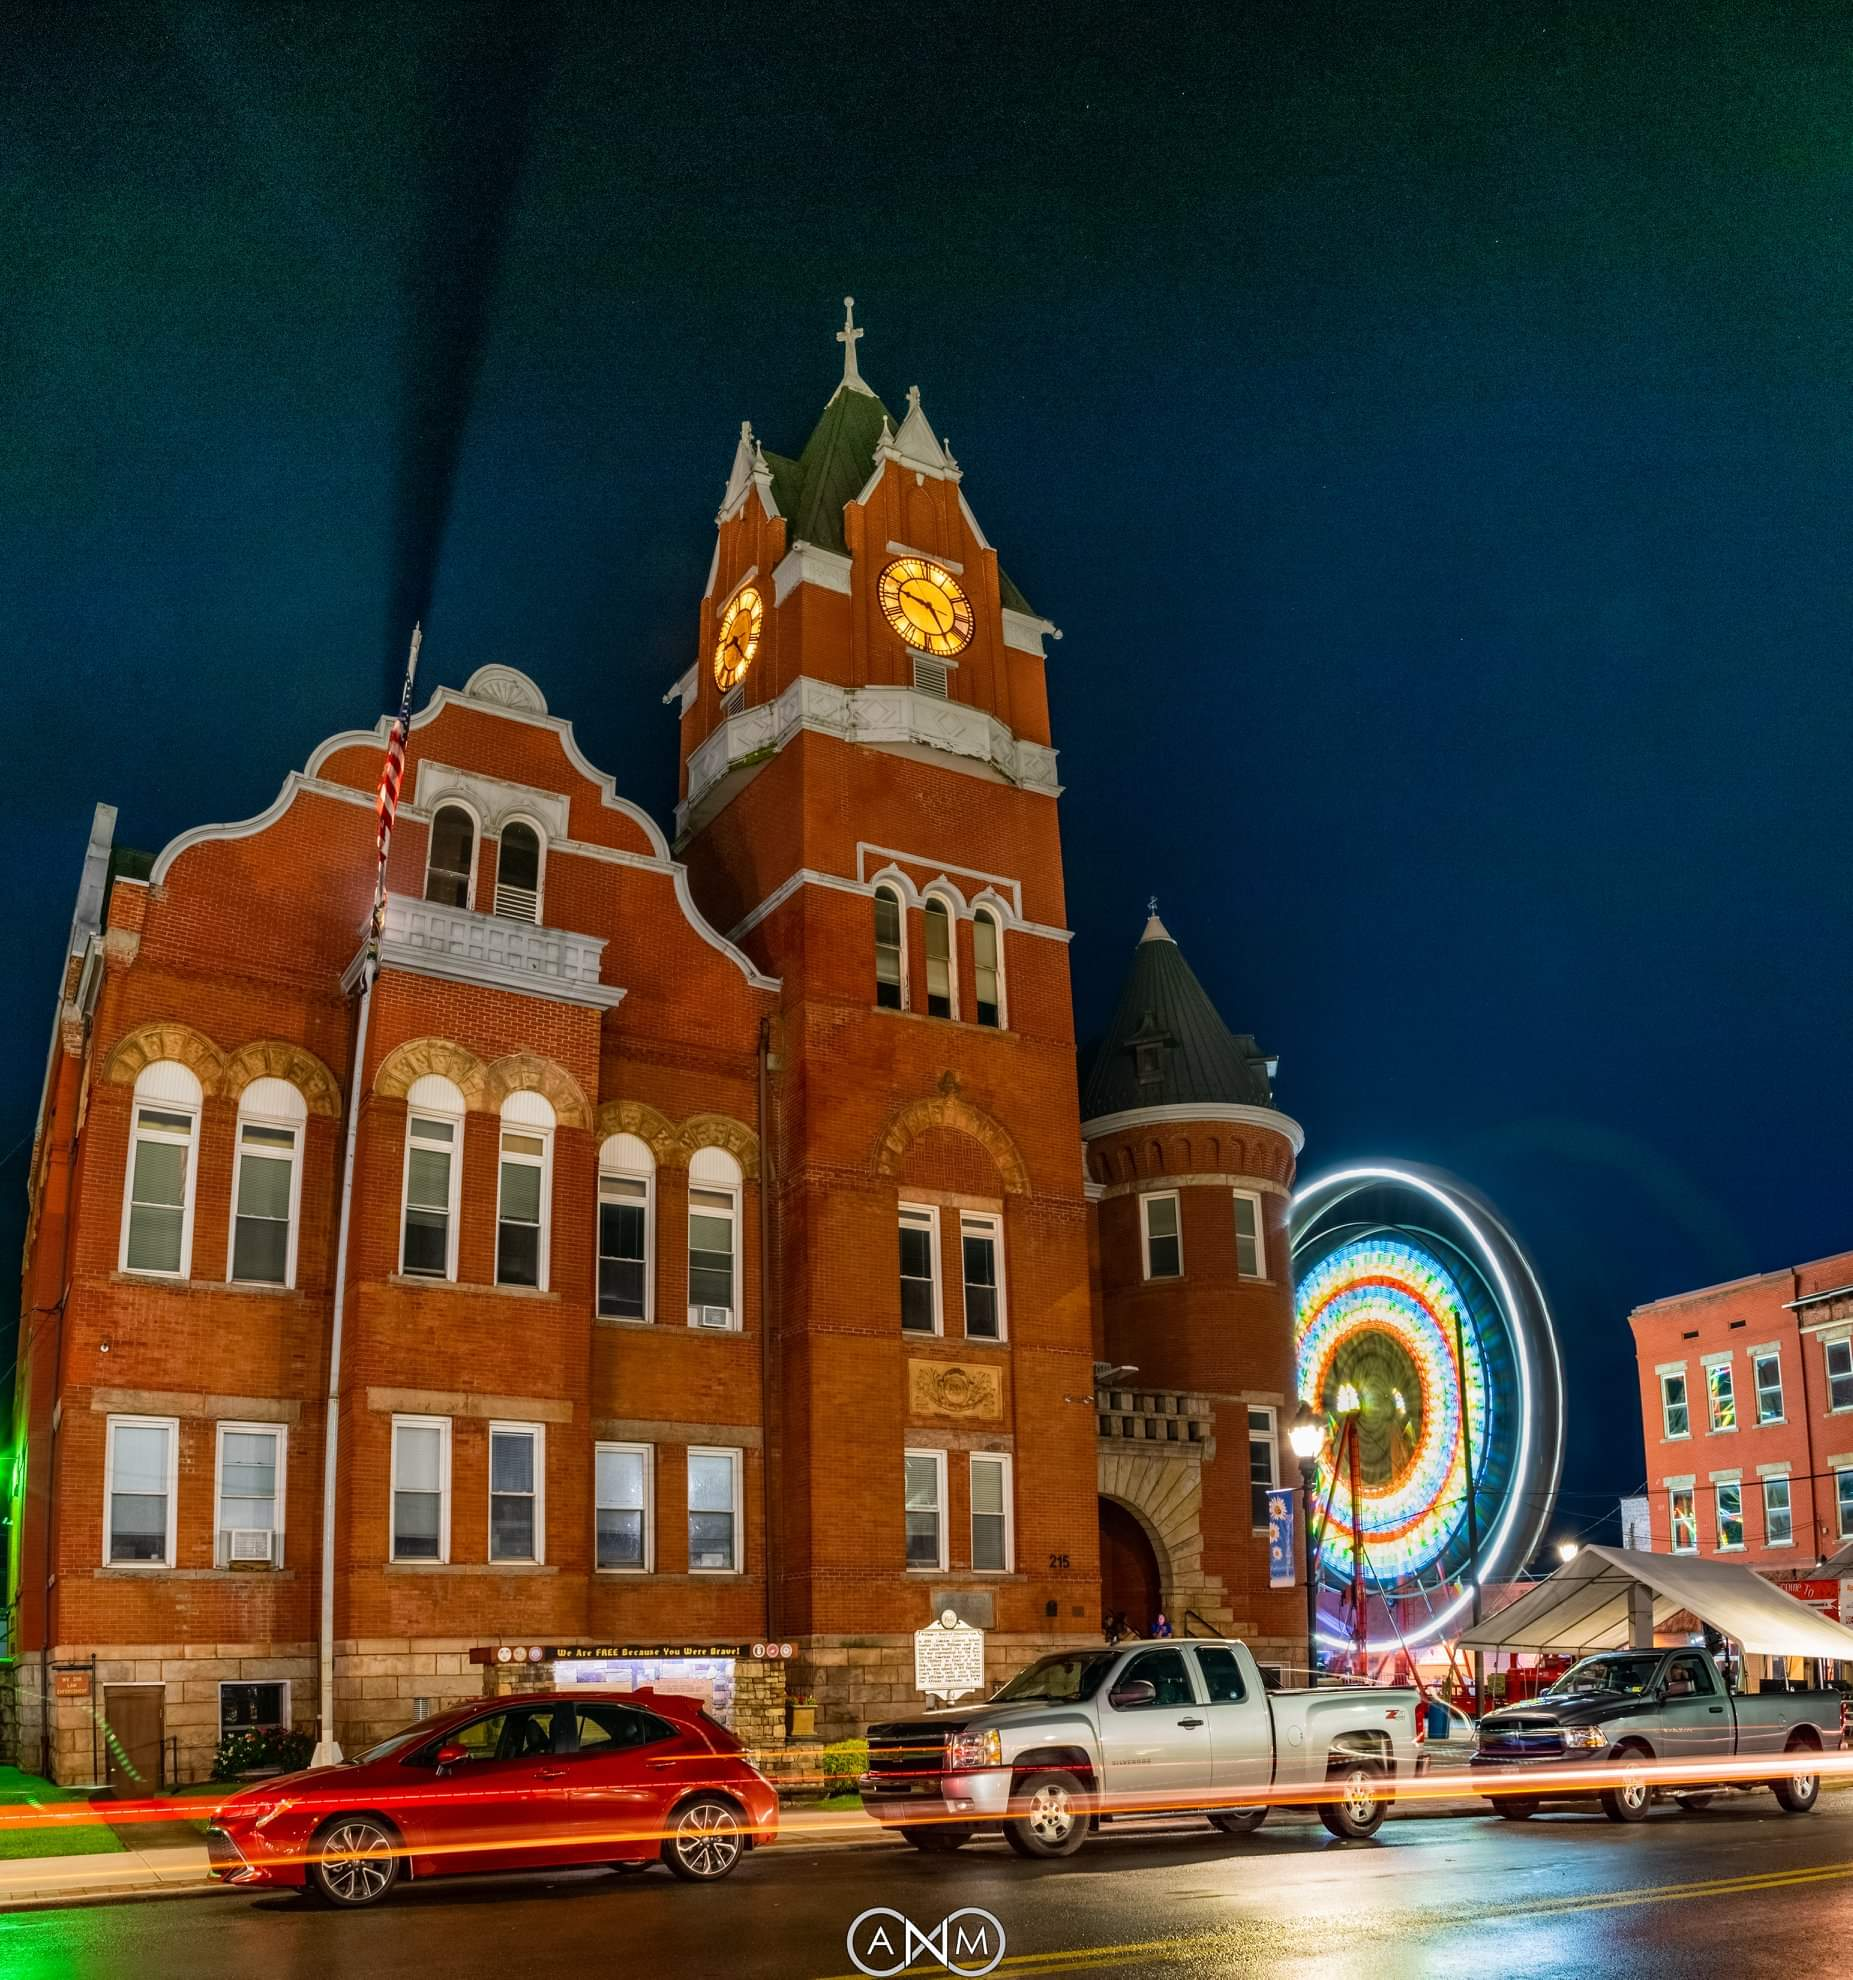 The Tucker County Courthouse lit up with carnival lights